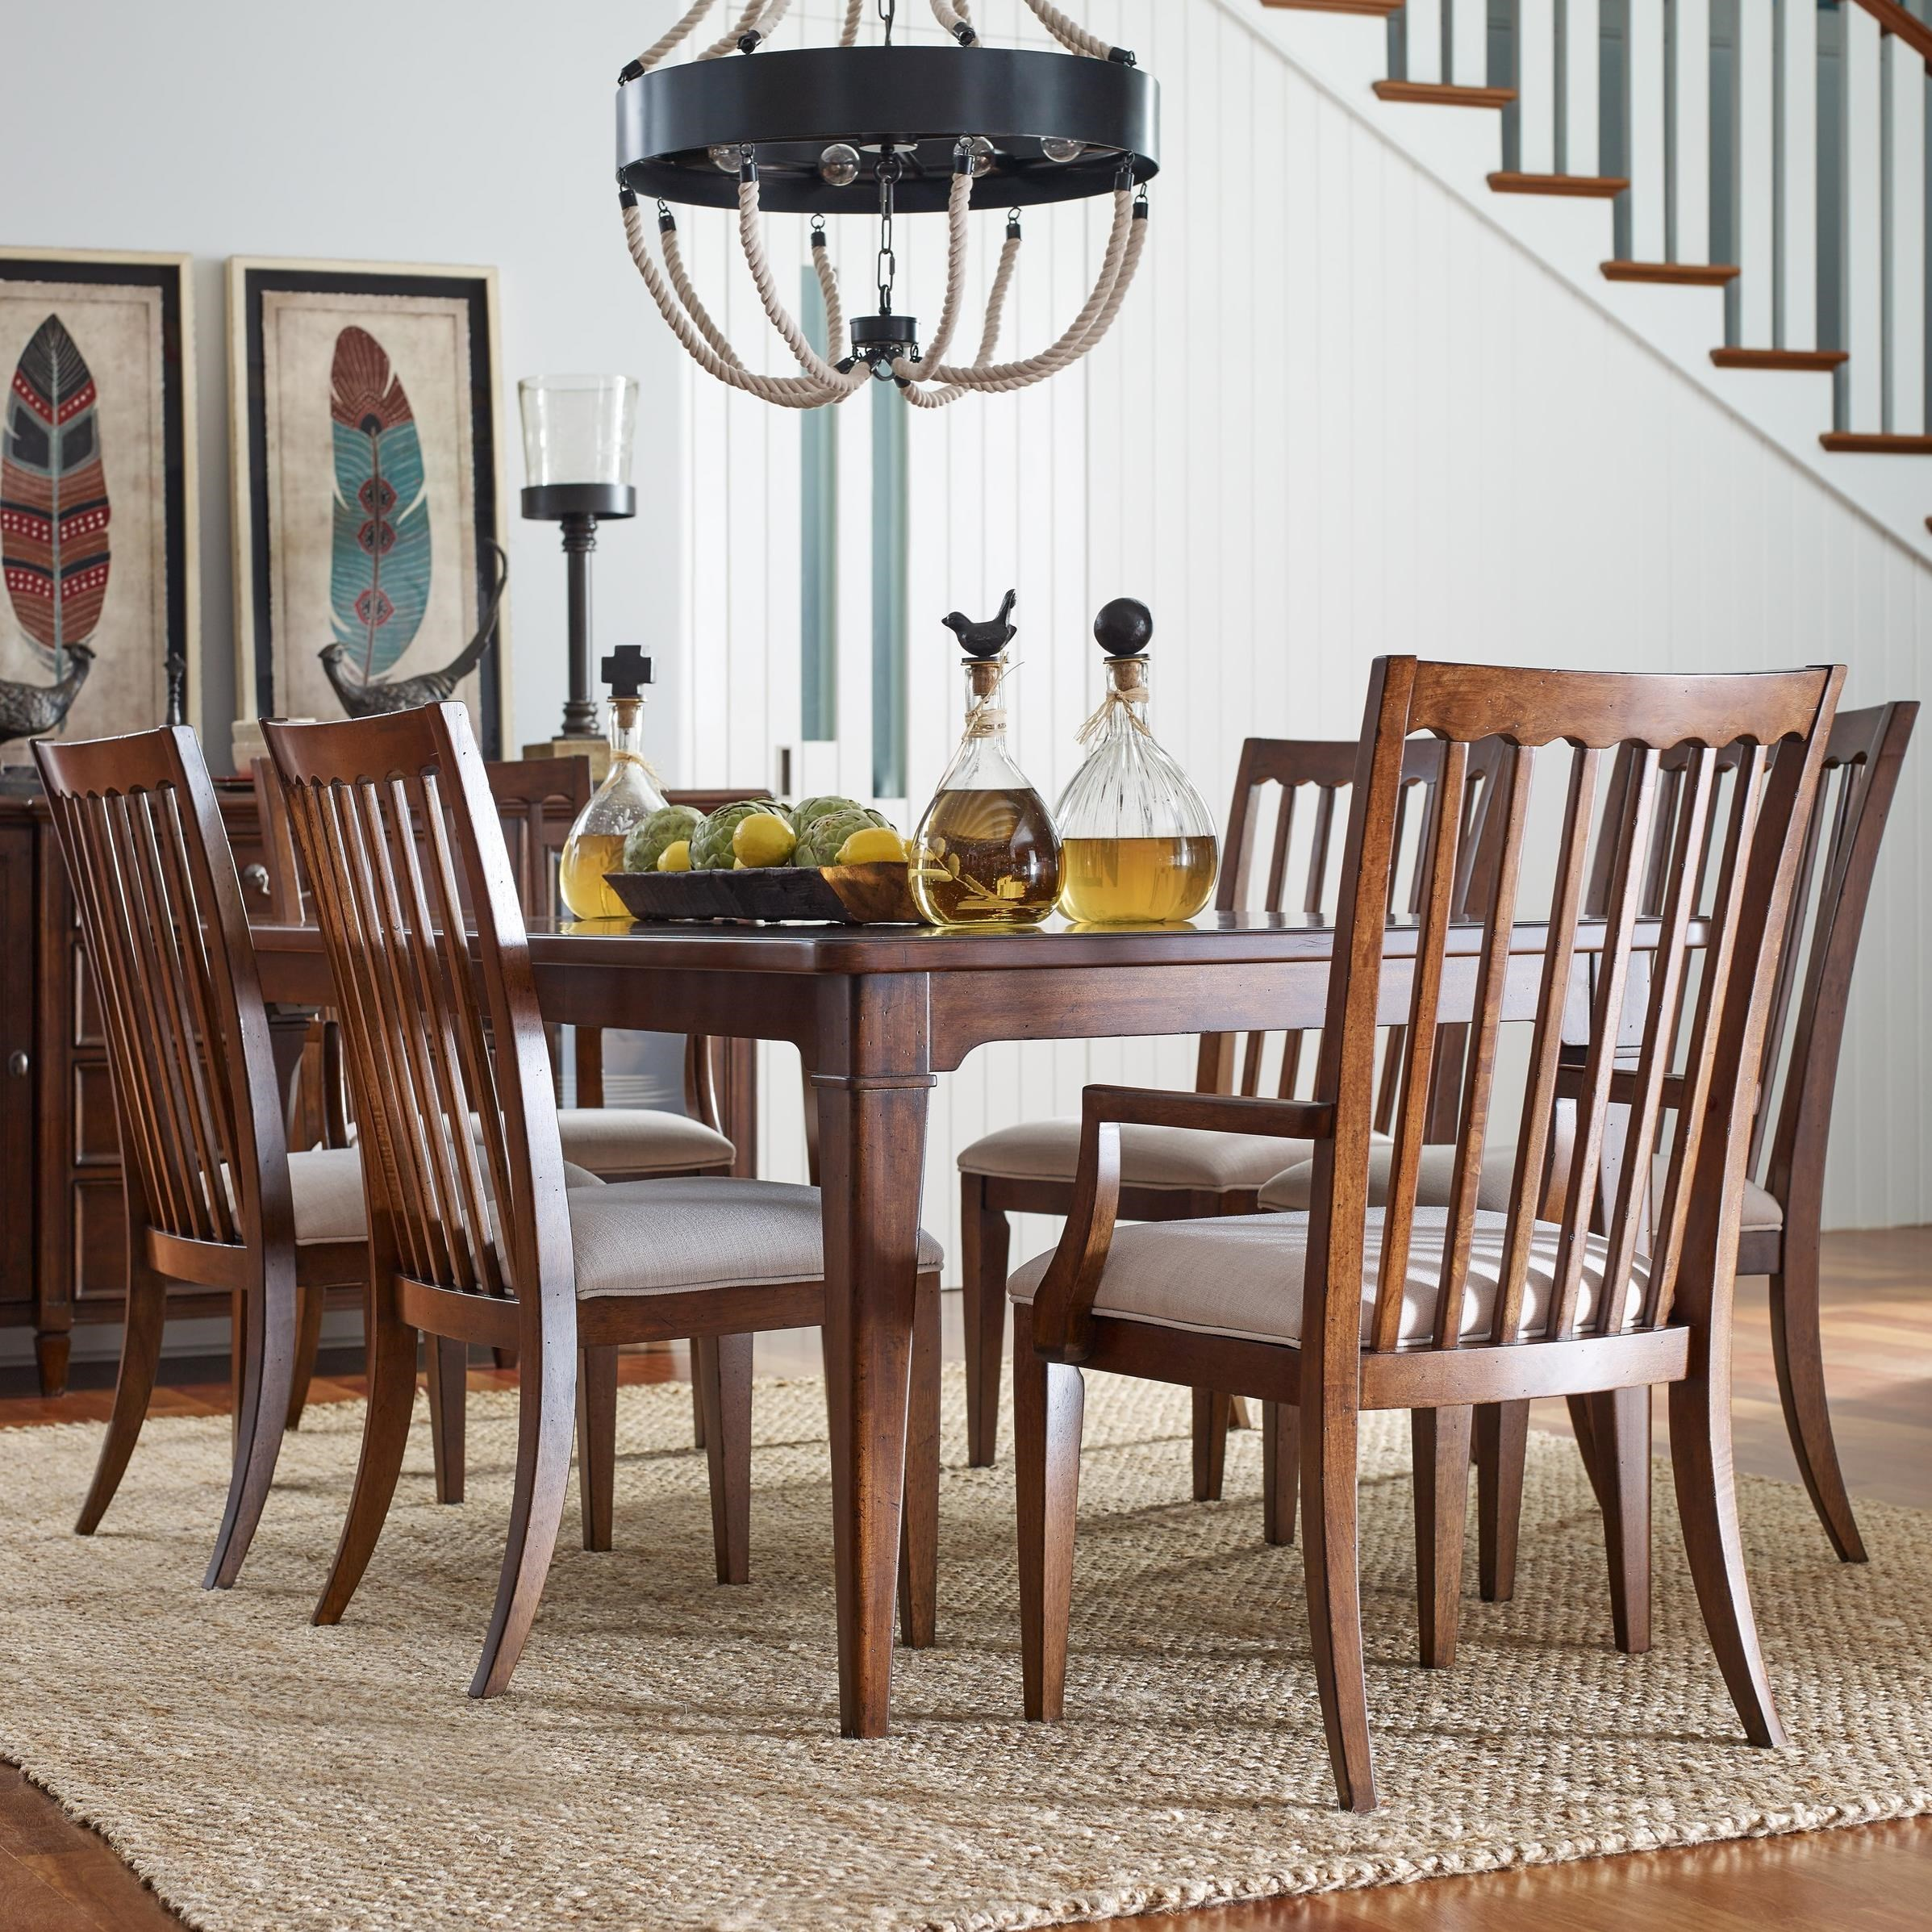 Rachael ray home by legacy classic upstate 7 piece table for Legacy classic dining room furniture